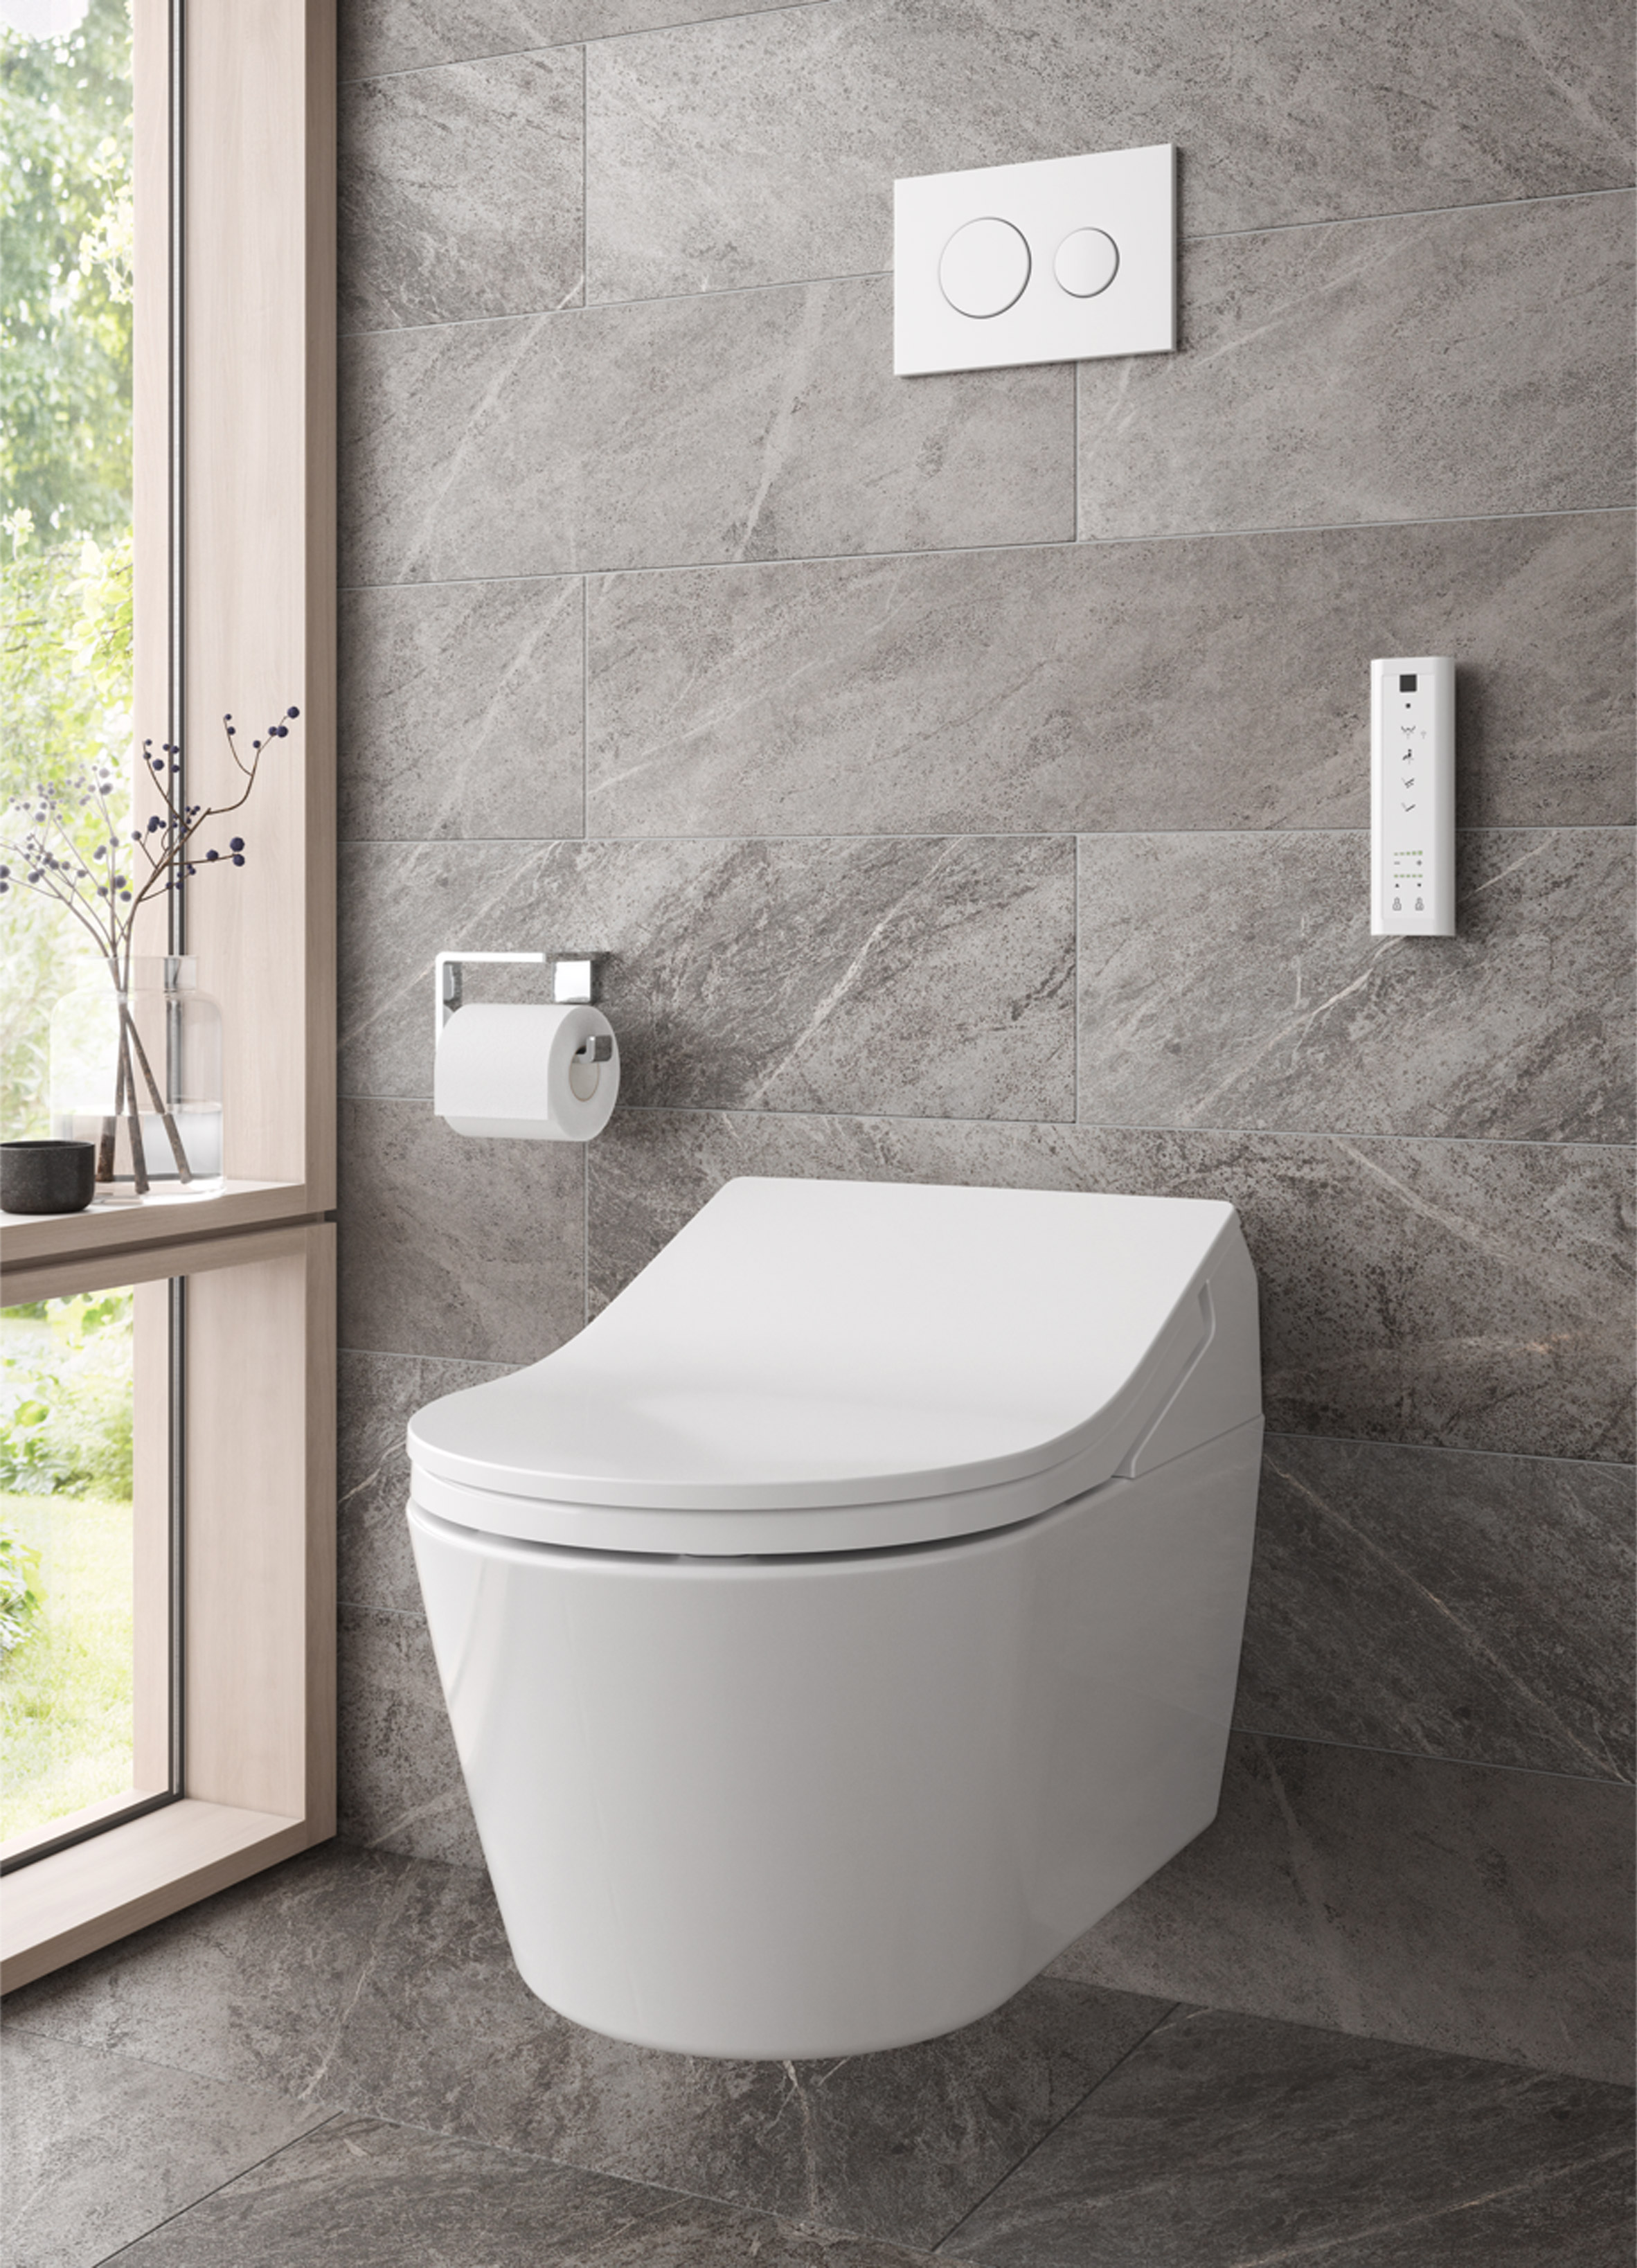 David Morley discusses how Toto bathroom products can reduce water ...